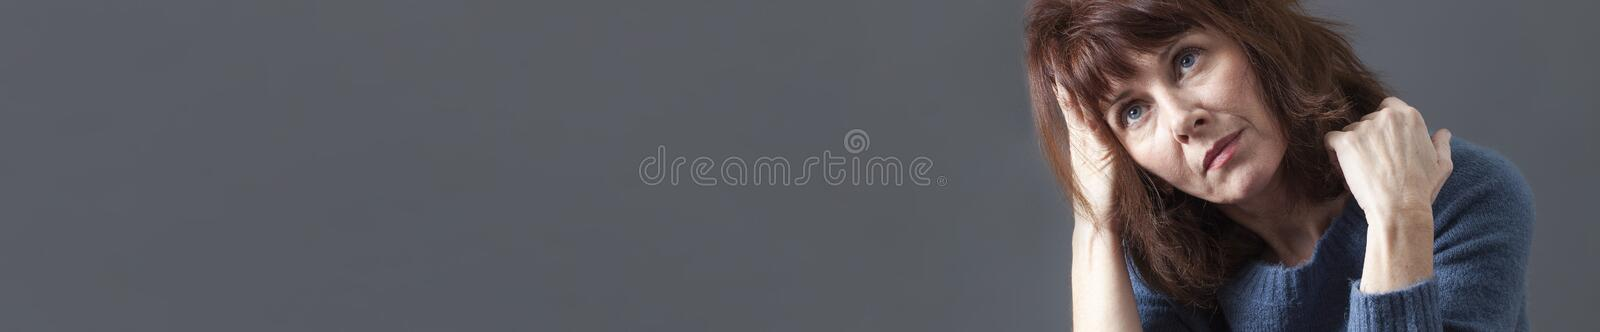 Daydreaming beautiful 50s woman looking contemplative, gray copy space banner royalty free stock photo